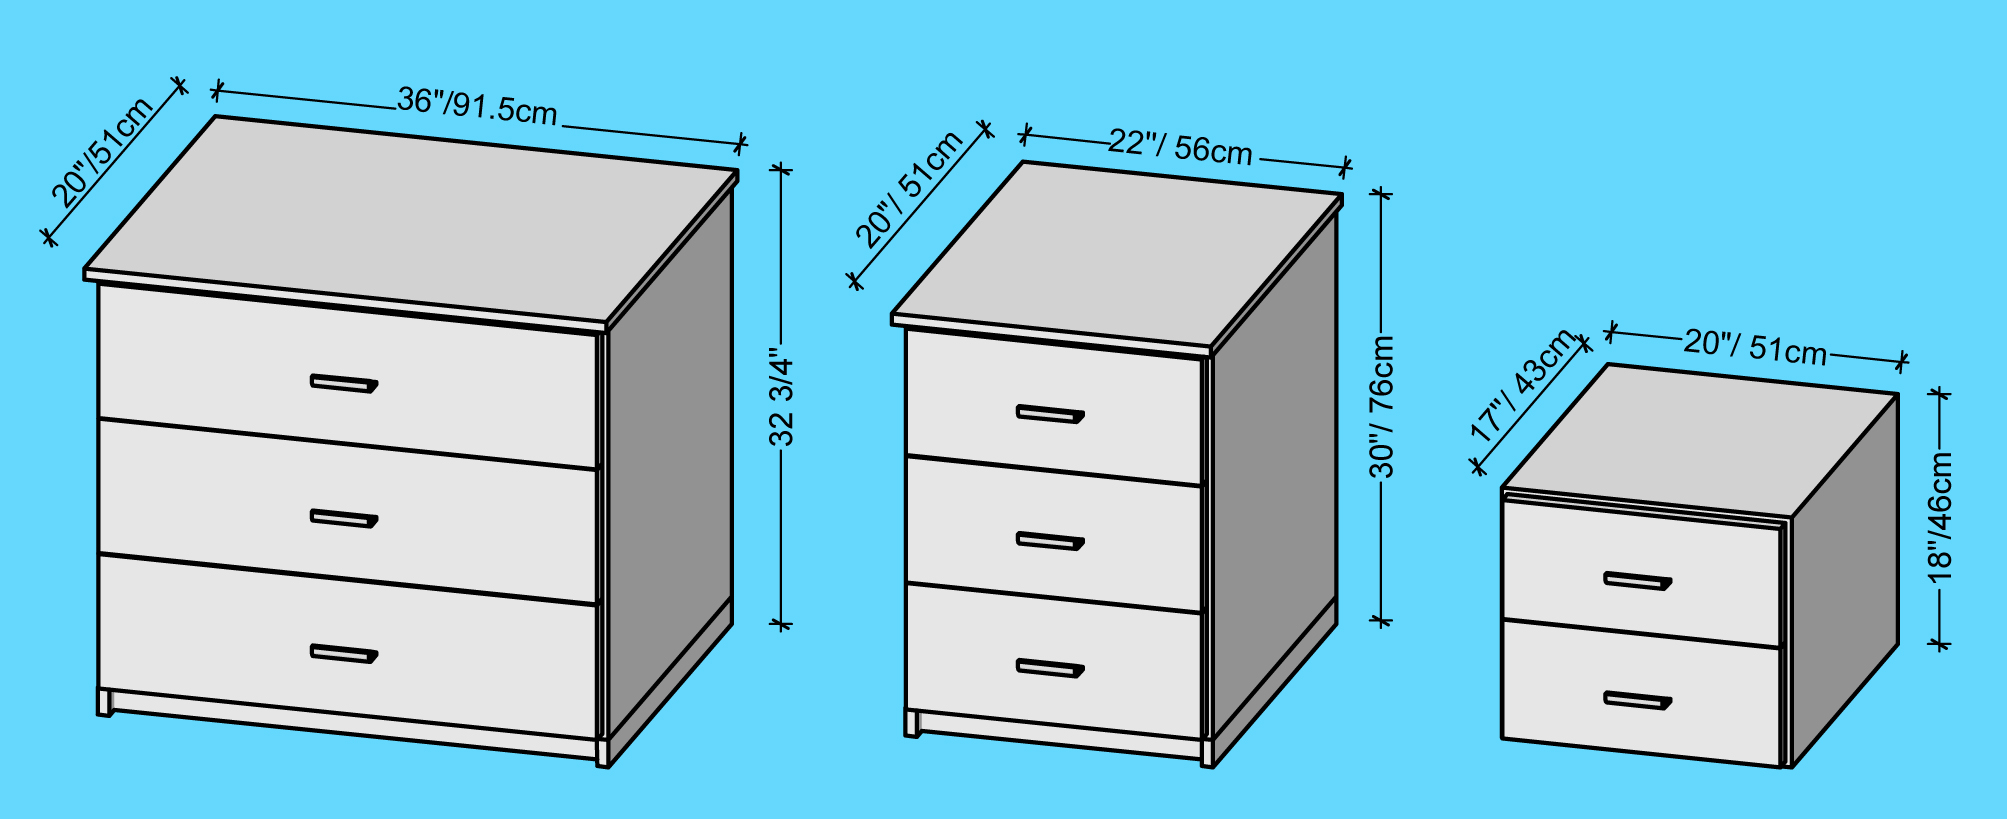 Image Result For Typical Dresser Sizes